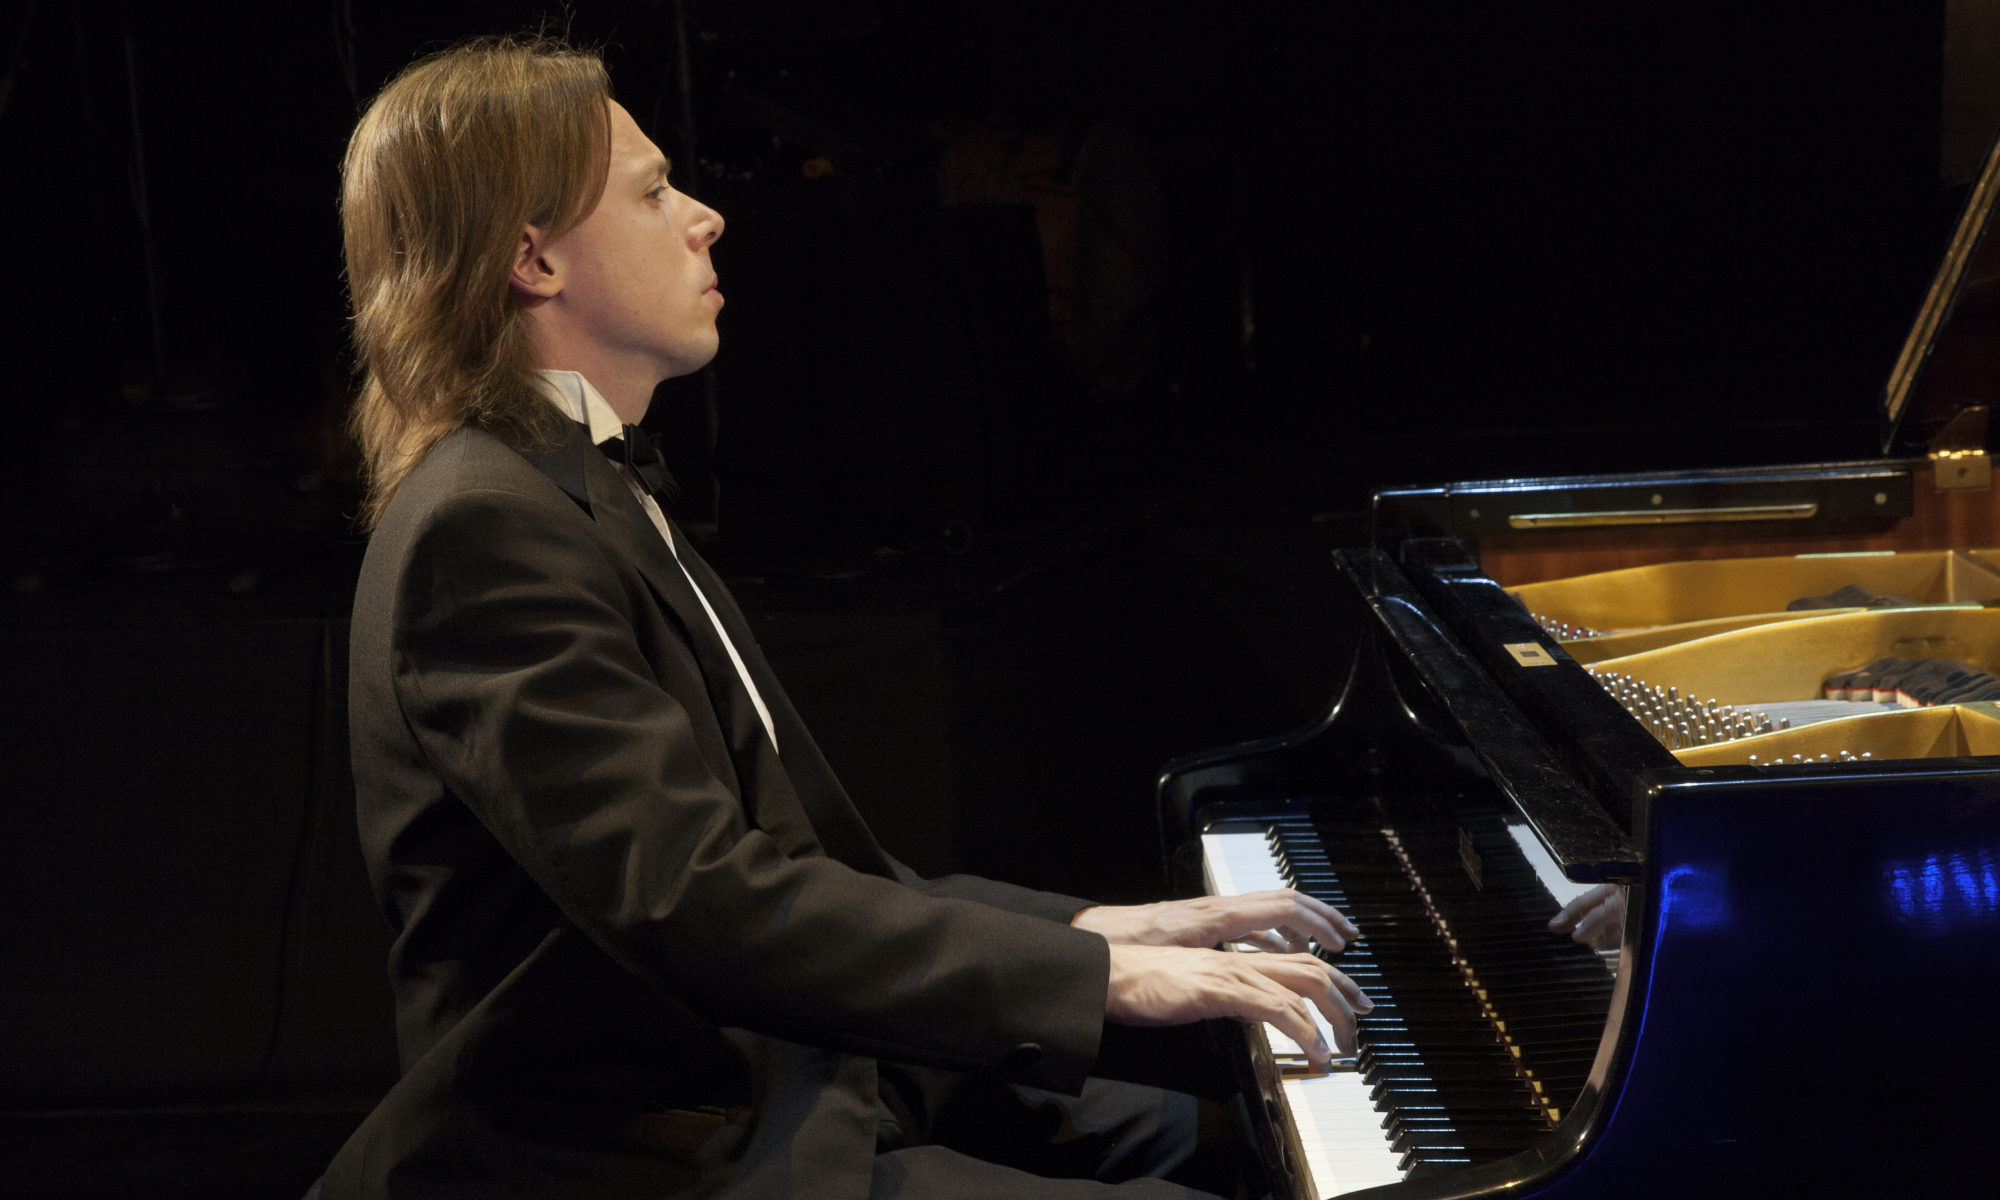 Peter Toth Pianist